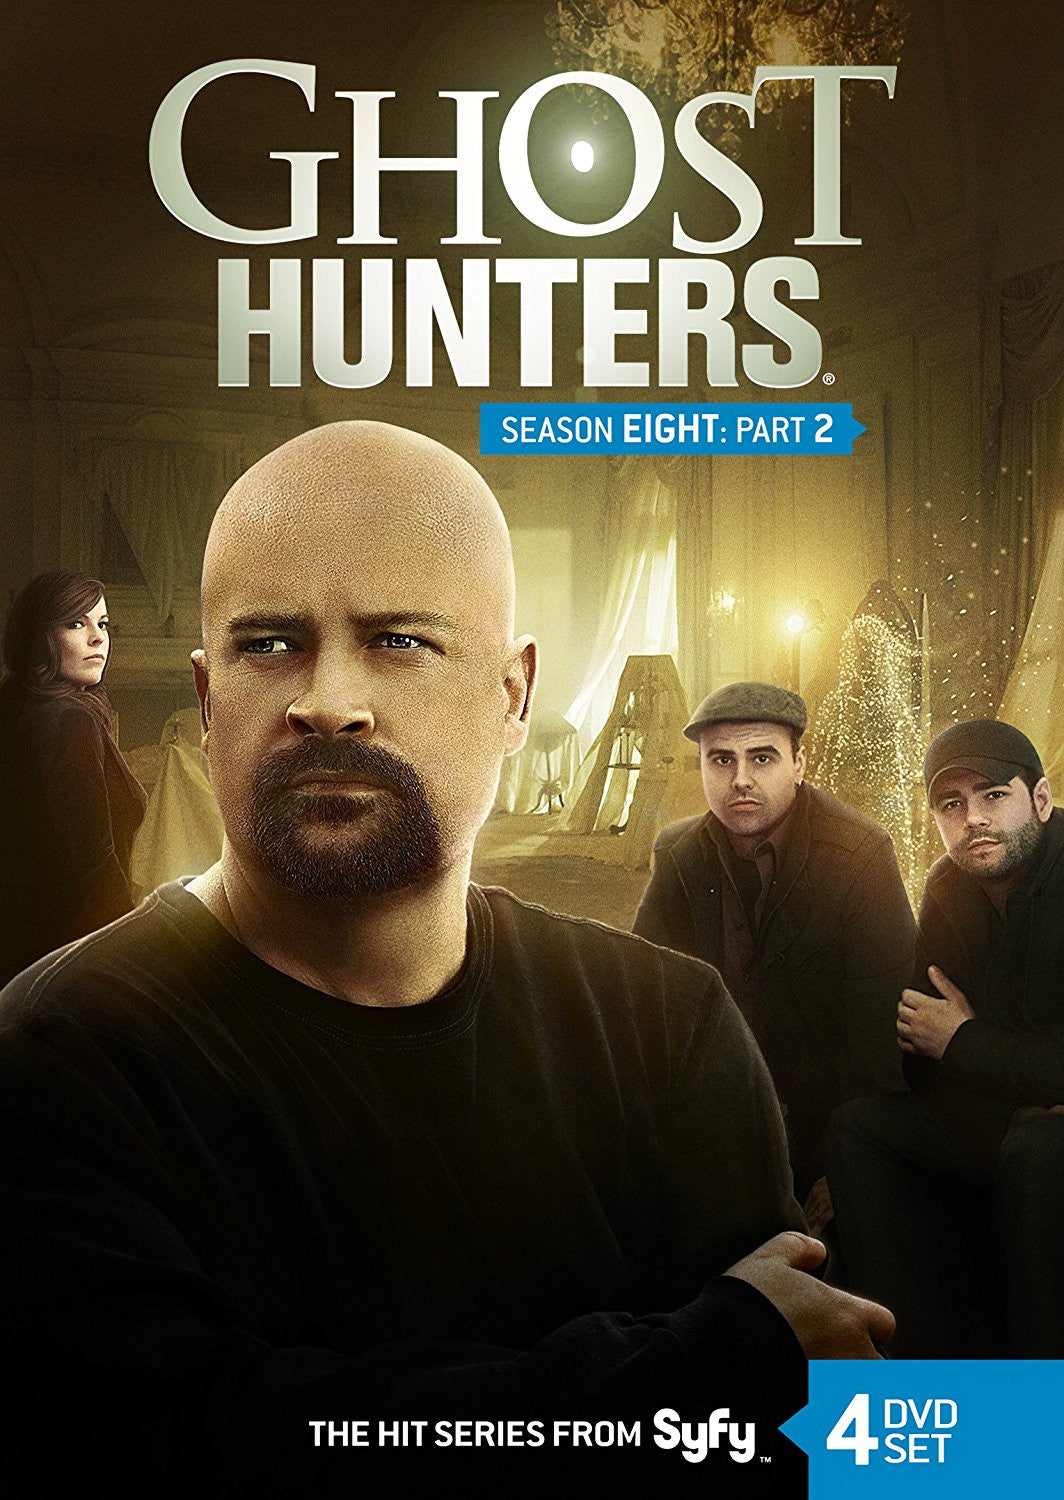 Ghost Hunters Season 8 Part 2 Collector's DVD Set